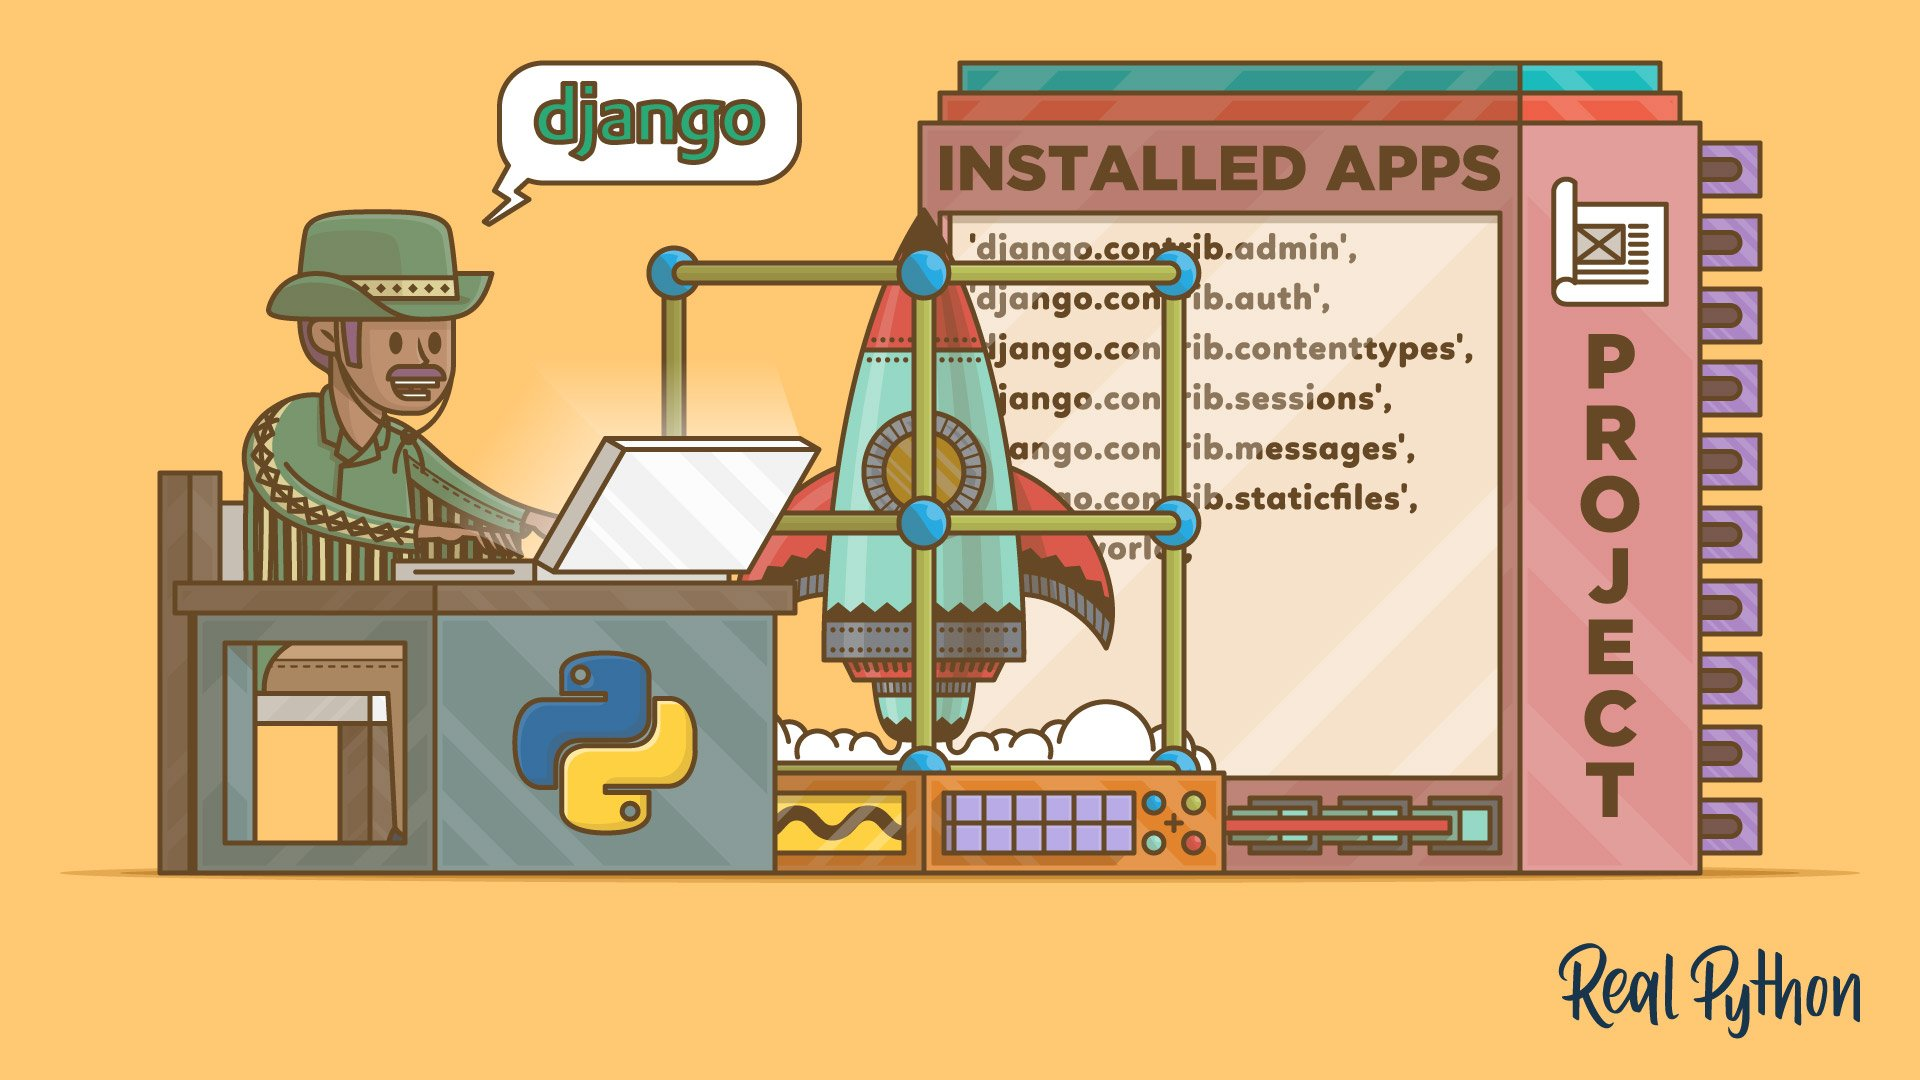 Get Started With Django Part 1: Build a Portfolio App